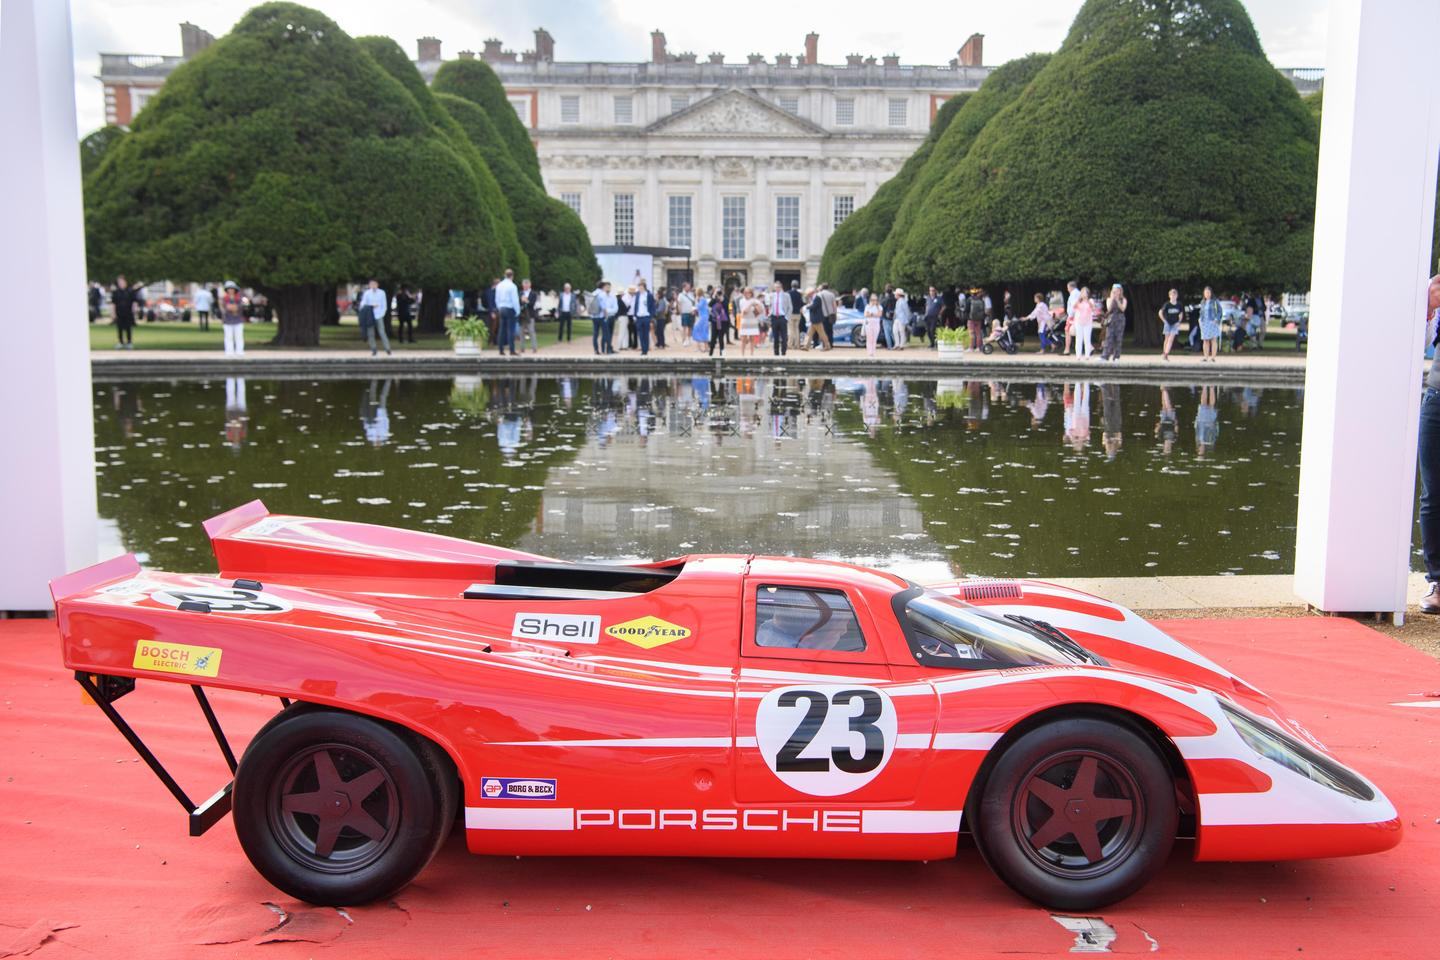 """The """"best in class"""" award for Junior cars went to this Porsche 917K replica of the car that won the 1970 24 Hours of Le Mans. The car has a 150cc Honda four-stroke engine and was flown from the United Kingdom to Porsche's private museum at its American Atlanta HQ for special exhibitions at one stage."""